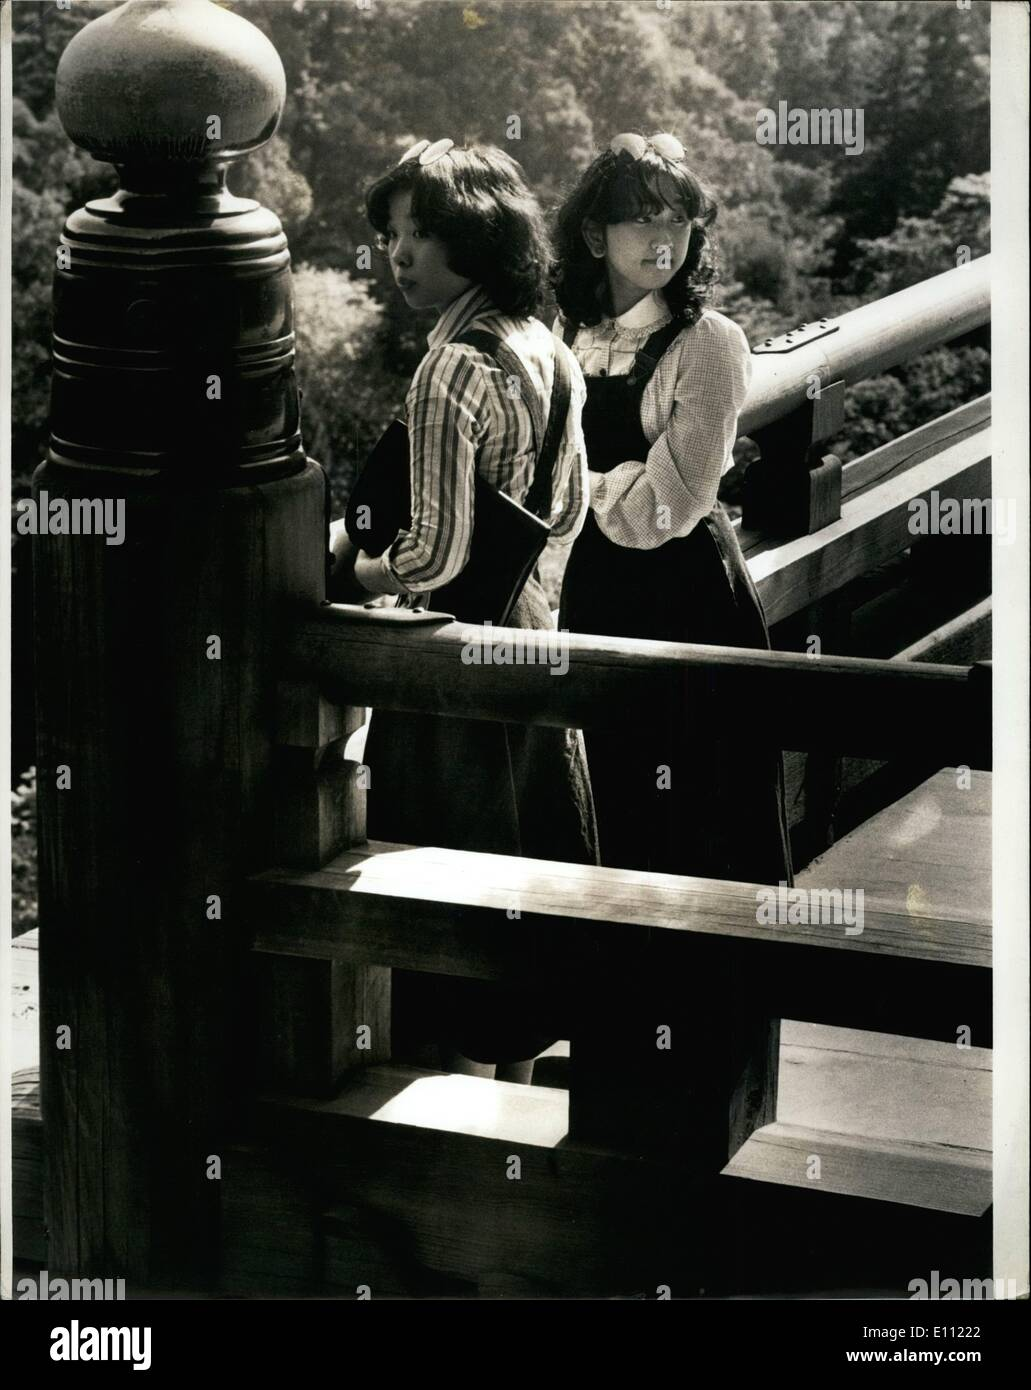 Apr. 04, 1975 - Japanese students visiting an Ancient shrine in Kyoto Japan (dressed in denim skirts) ne - Stock Image